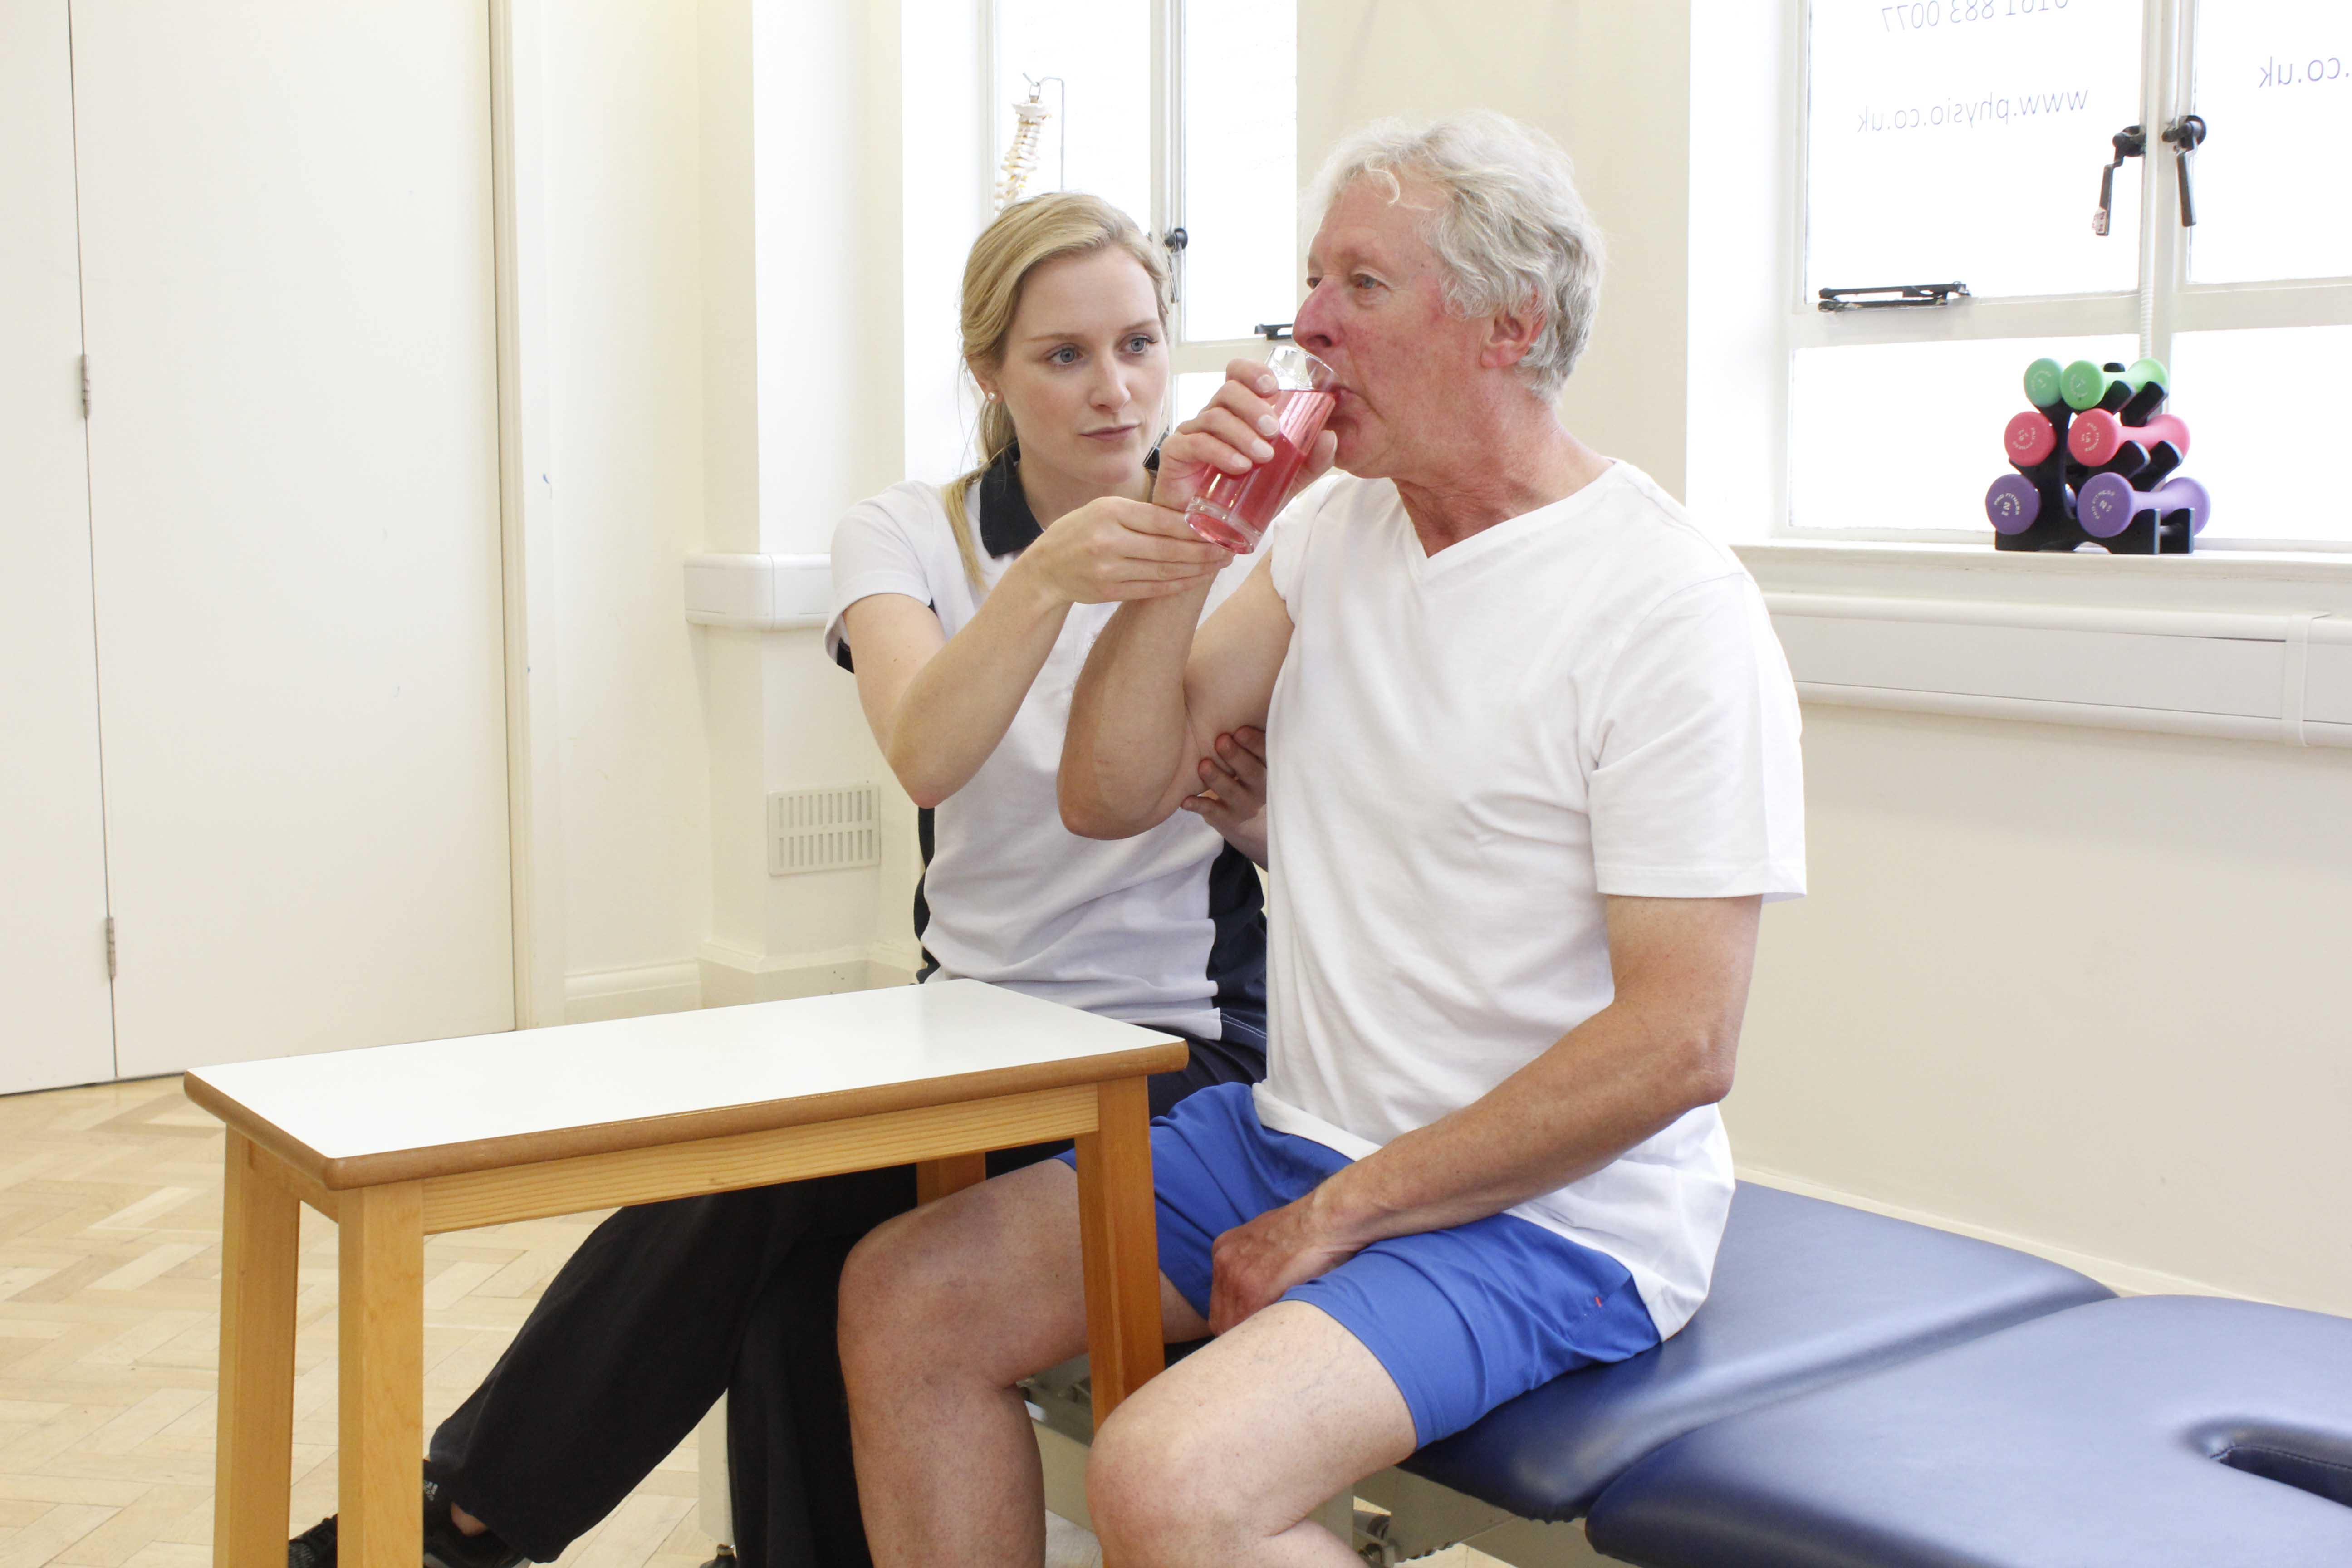 Functional rehabilitation exercises assisted by specilaist Physiotherapist